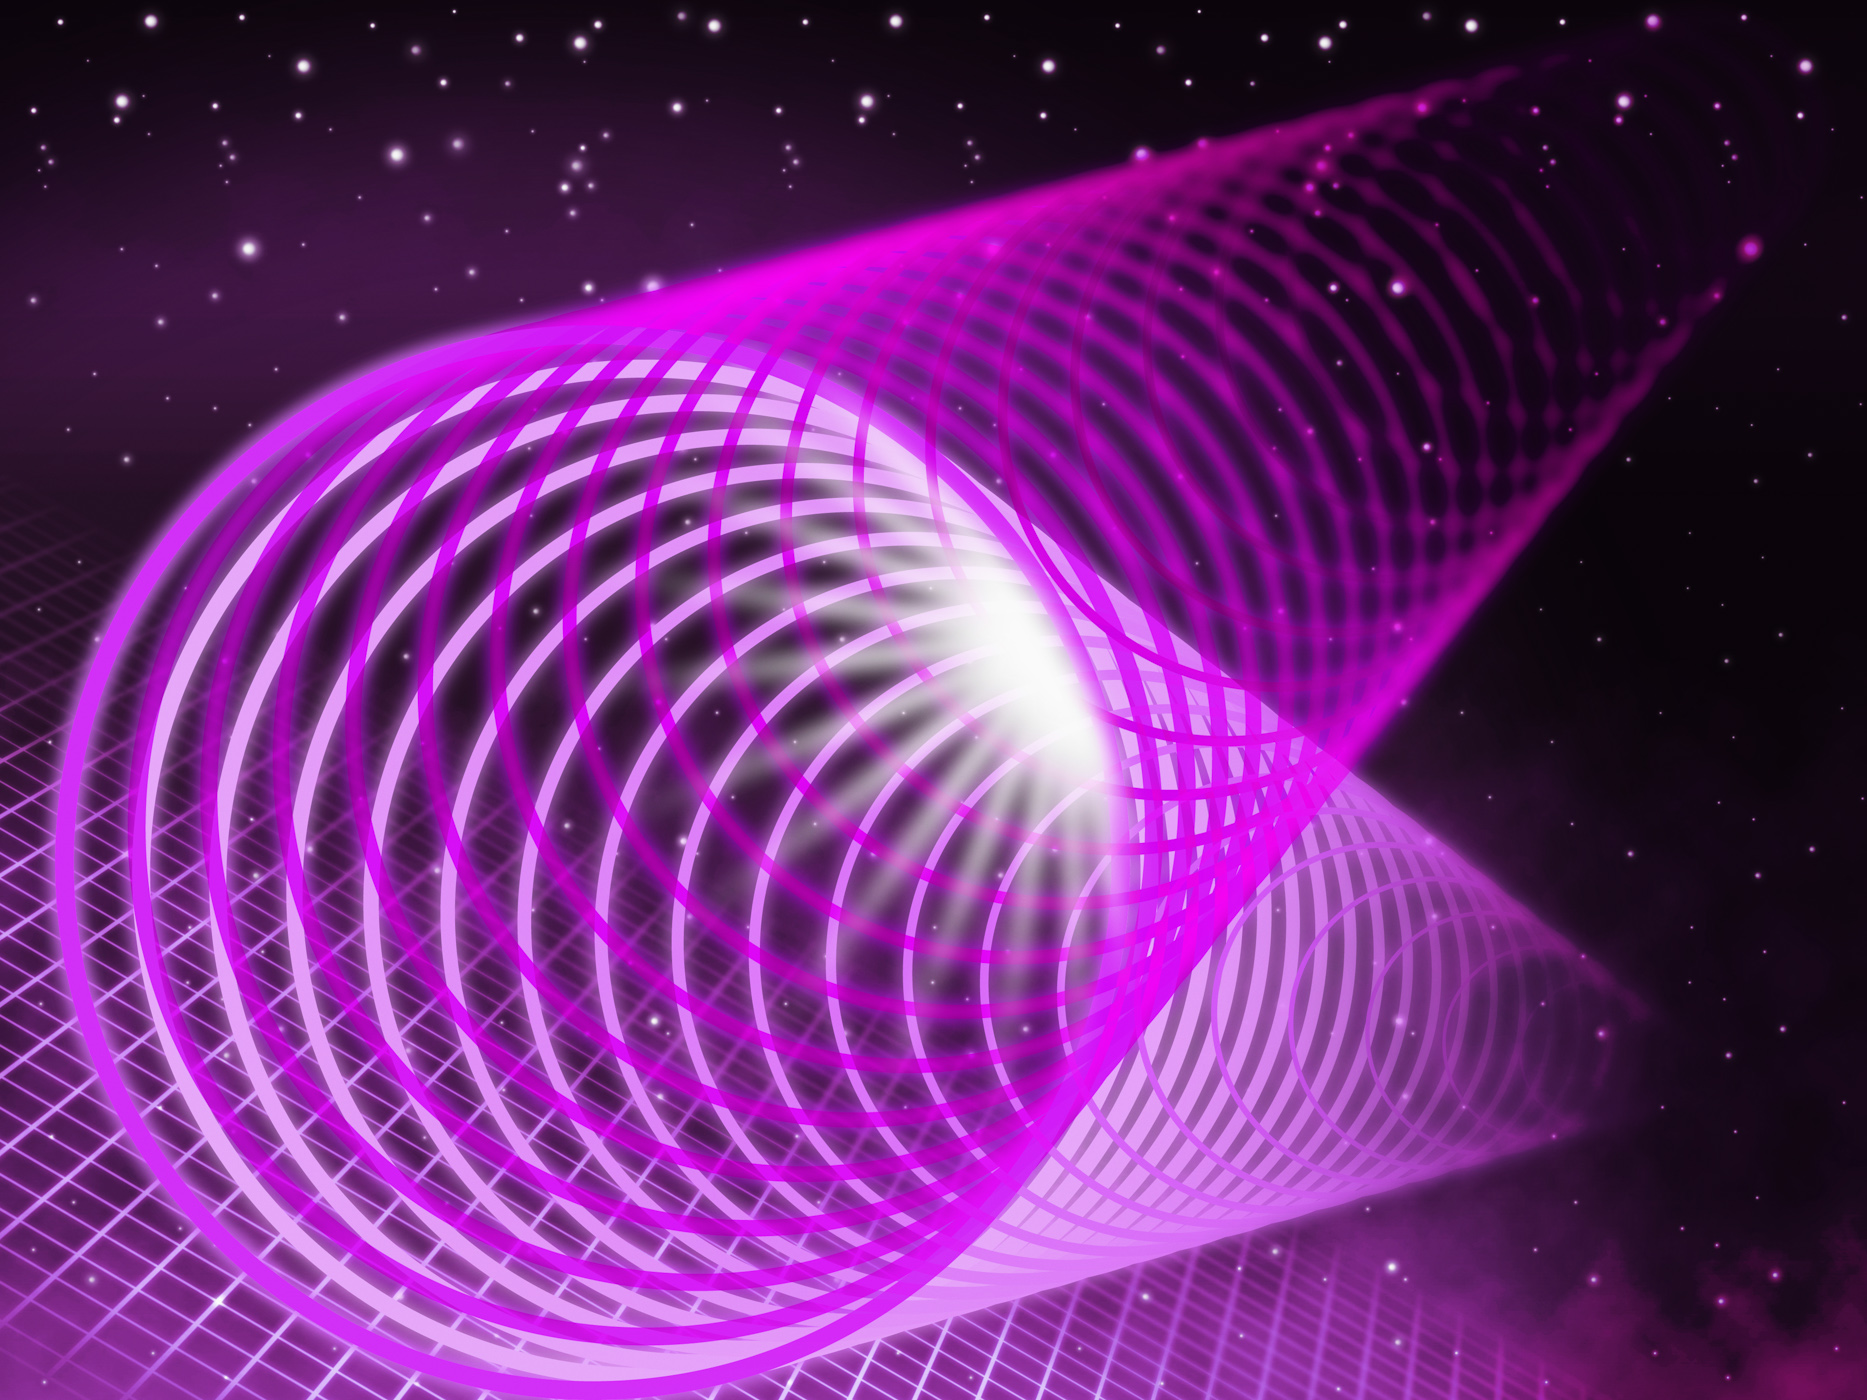 Purple coil background shows pipe light and night sky photo